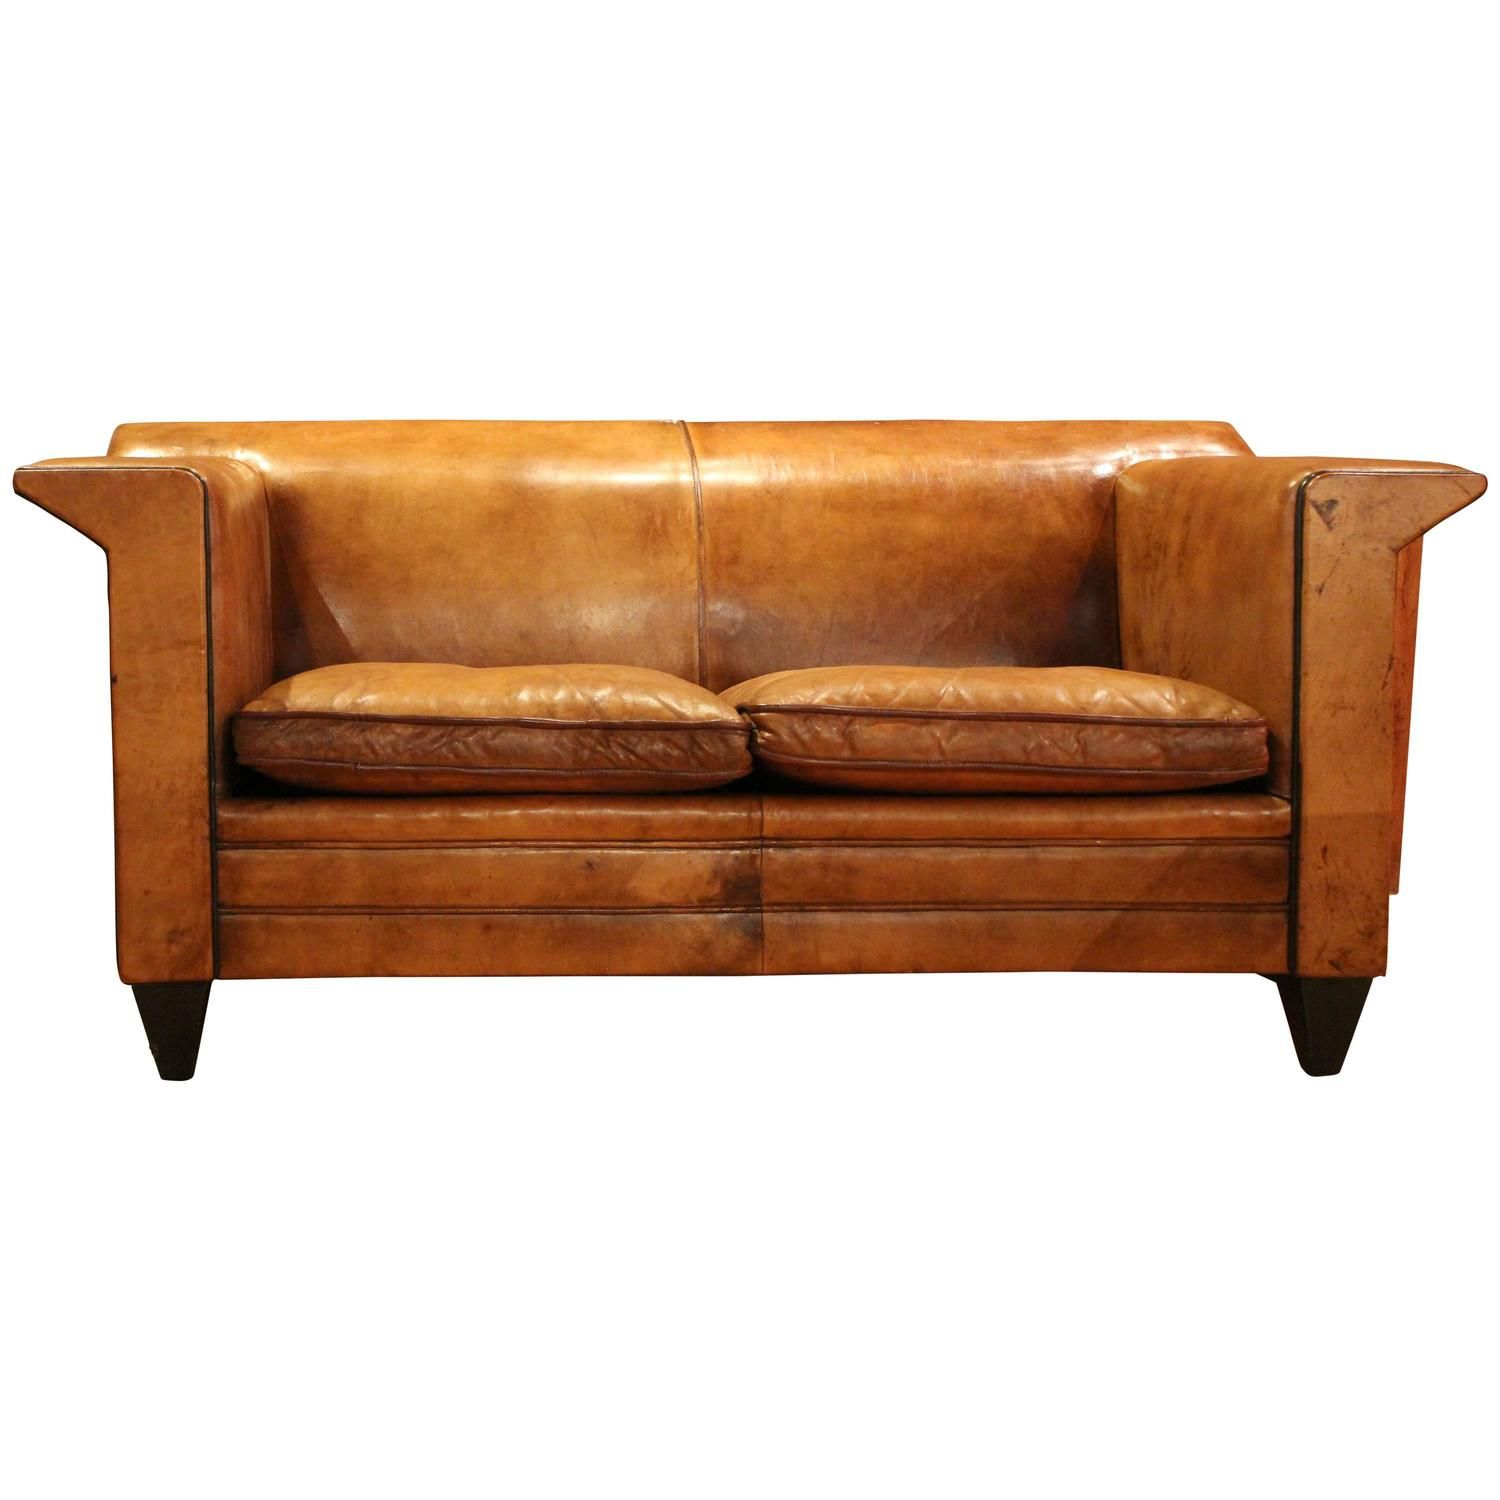 Dutch Leather Sofa By Bart Van Bekhoven